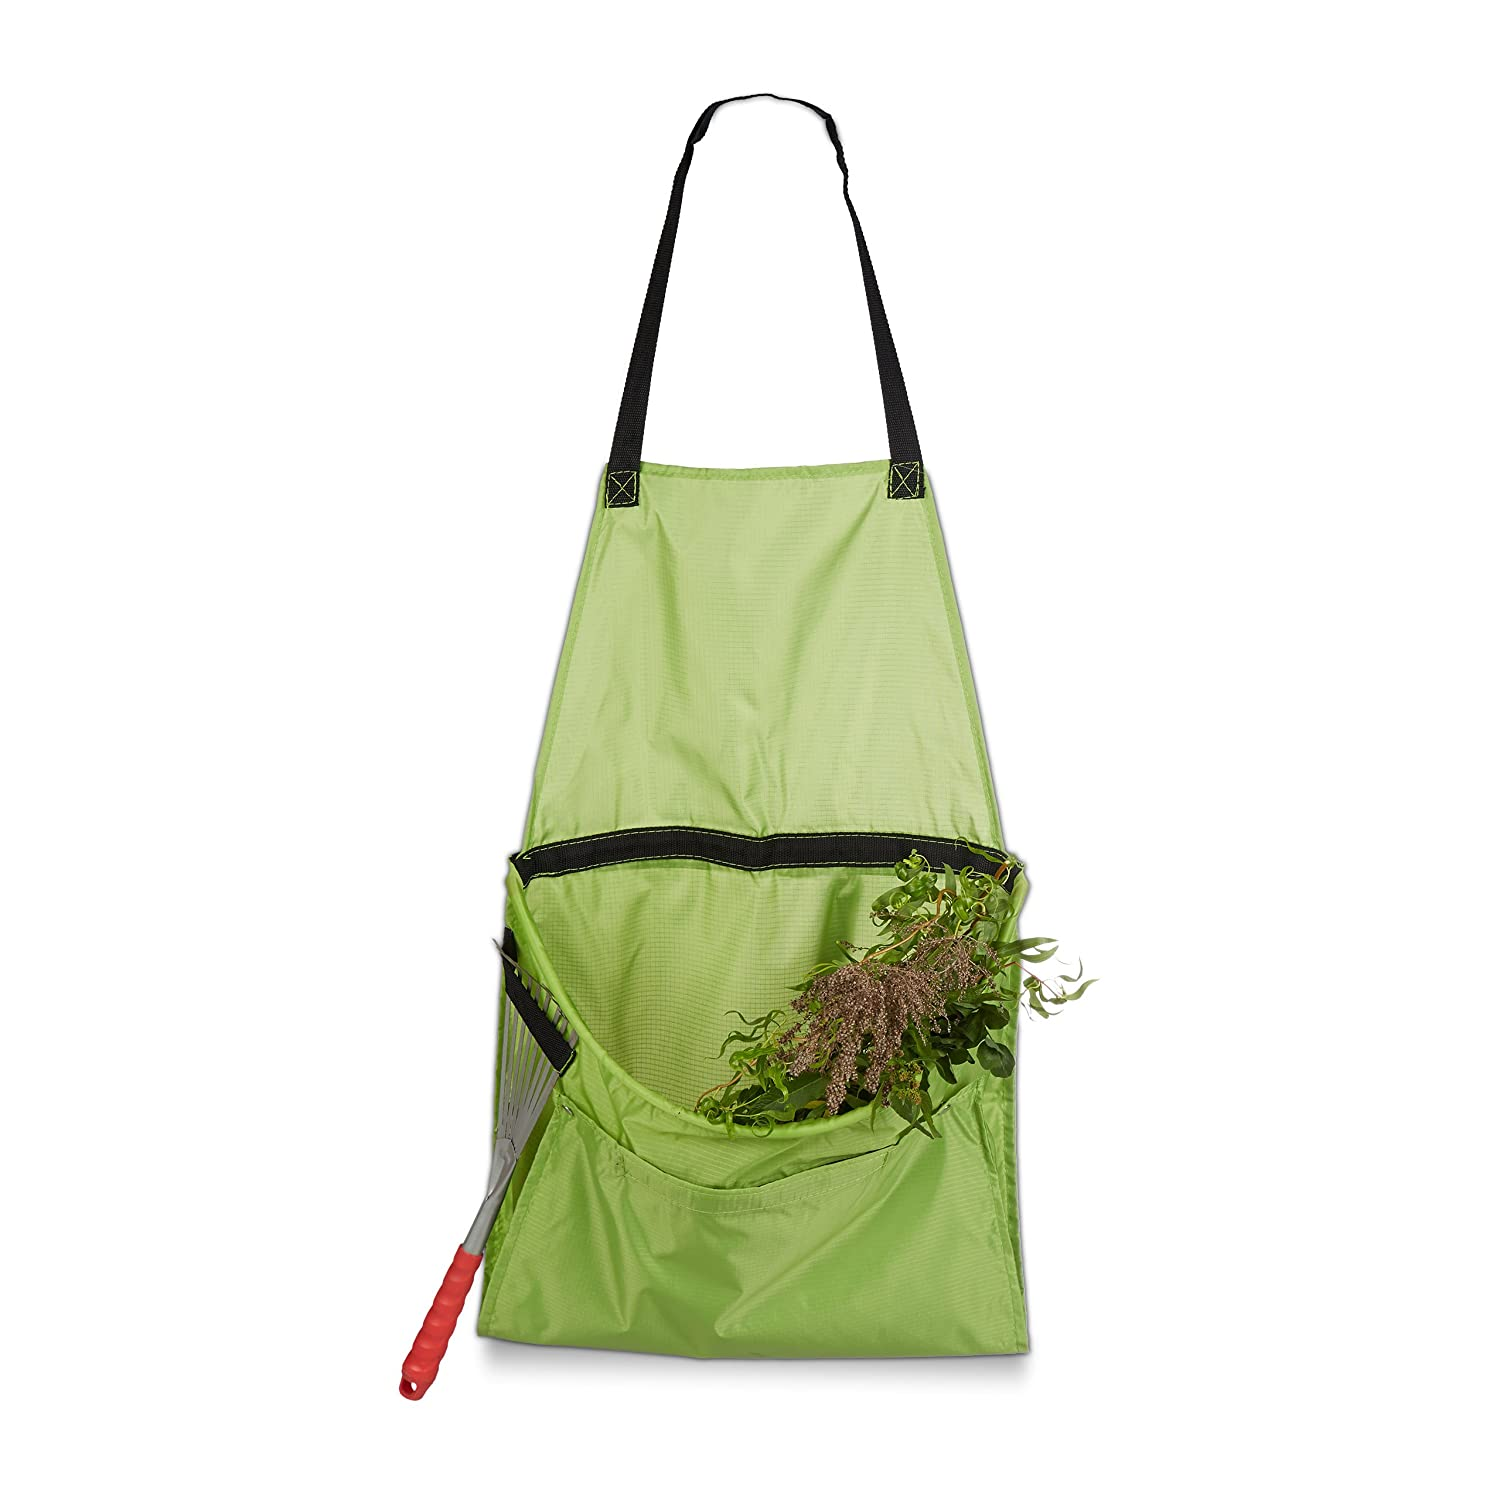 Relaxdays Garden Apron, Apron for Weeding and Harvesting, Adjustable Size, for Collecting Garden Waste, Green 10020711